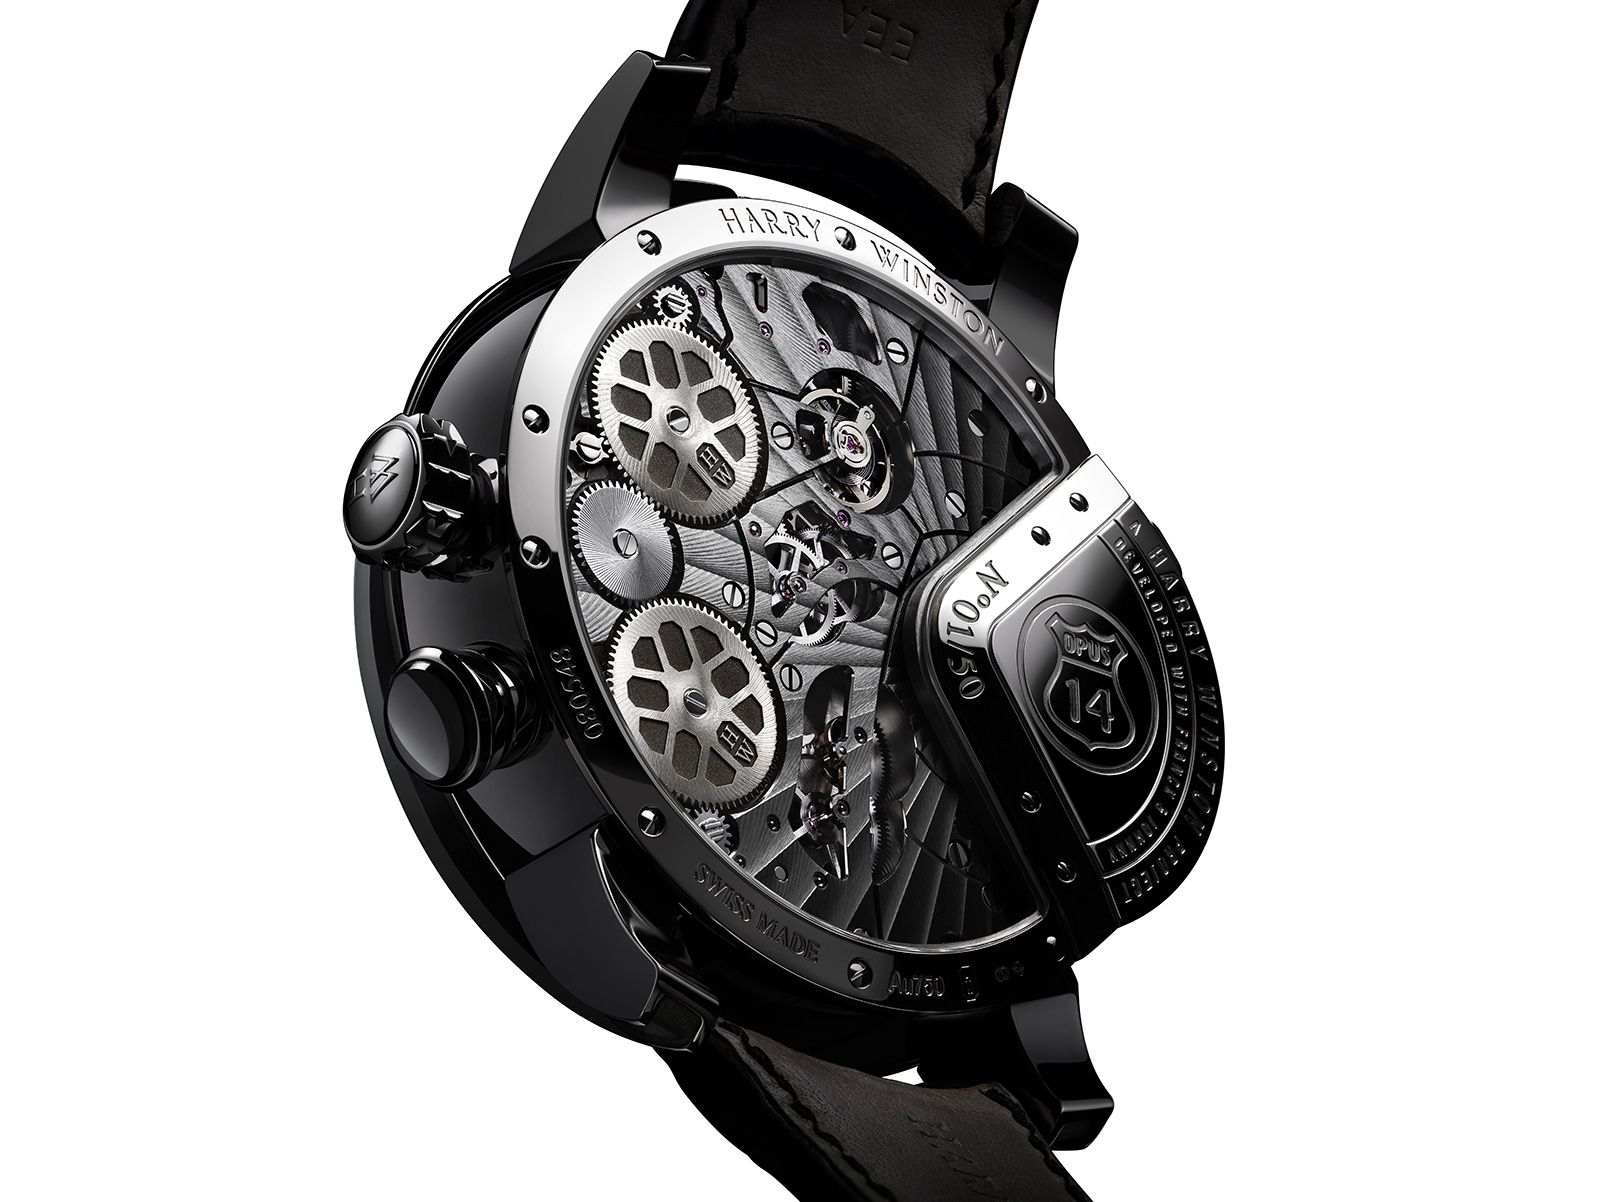 Watches By SJX: Harry Winston Introduces the Opus 14, Featuring a Jukebox Automaton Complication (with Pricing)